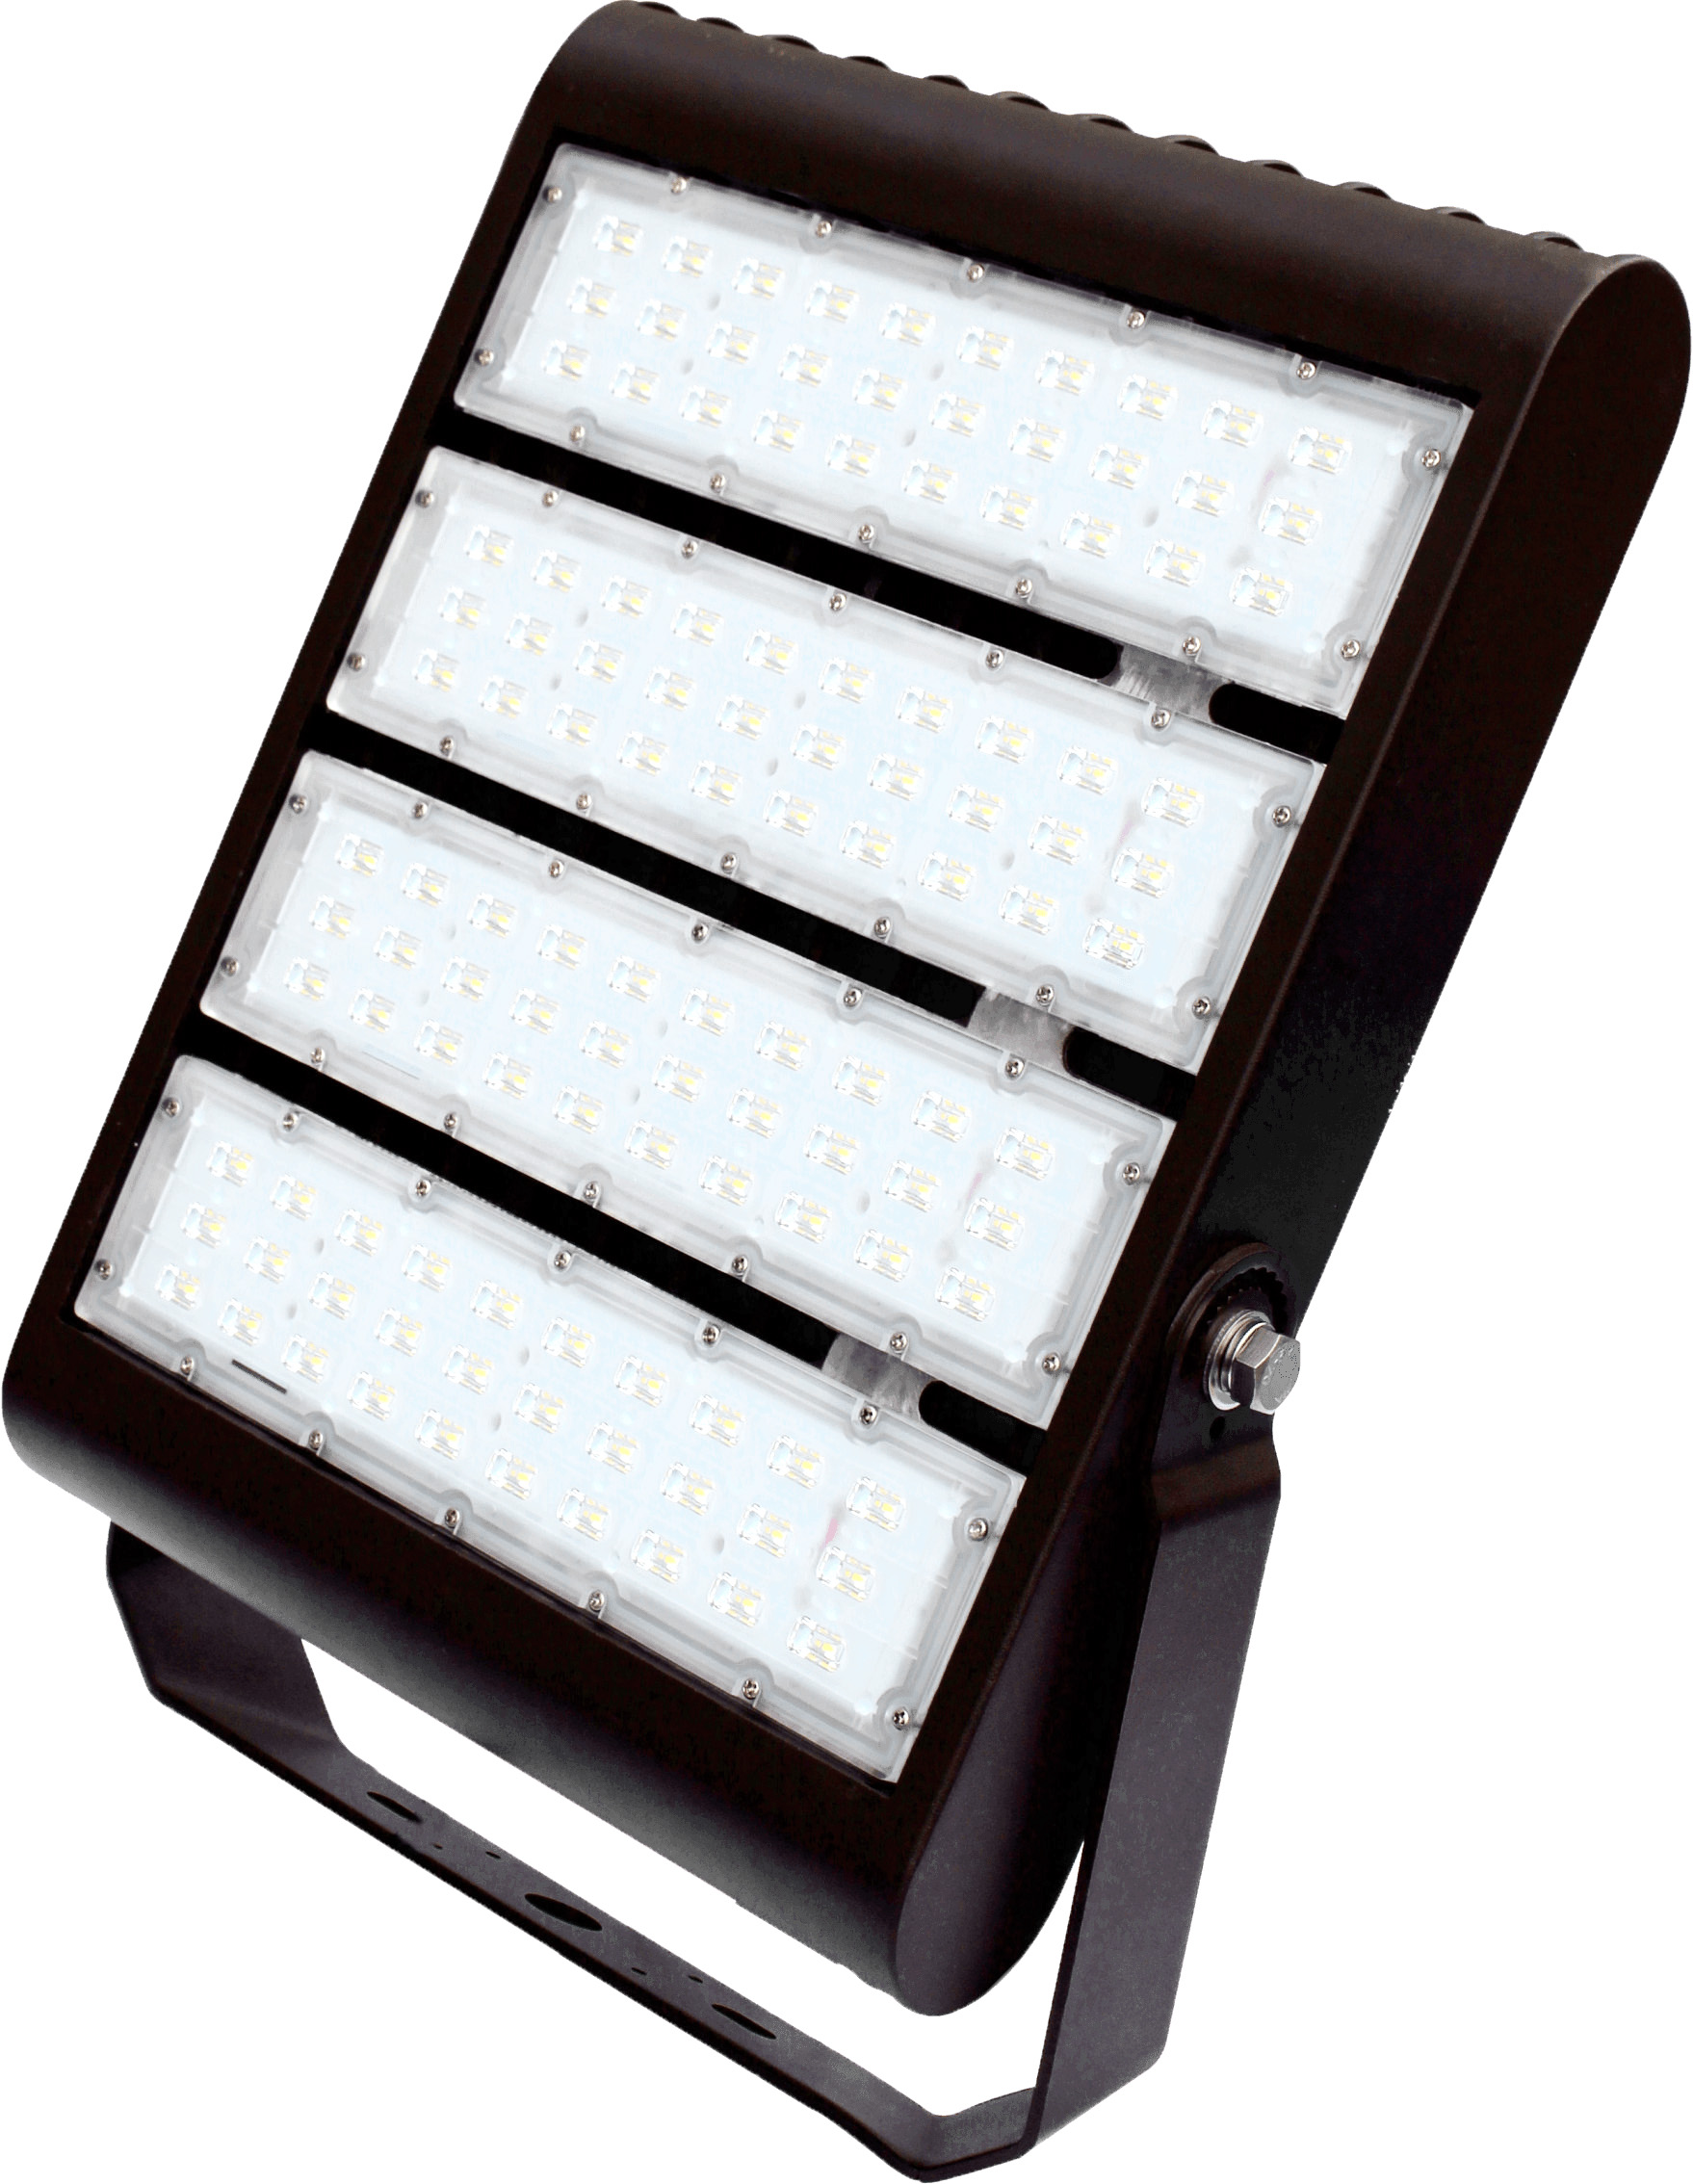 Flood Light FLL – 300w – 5000K – Yoke Mount